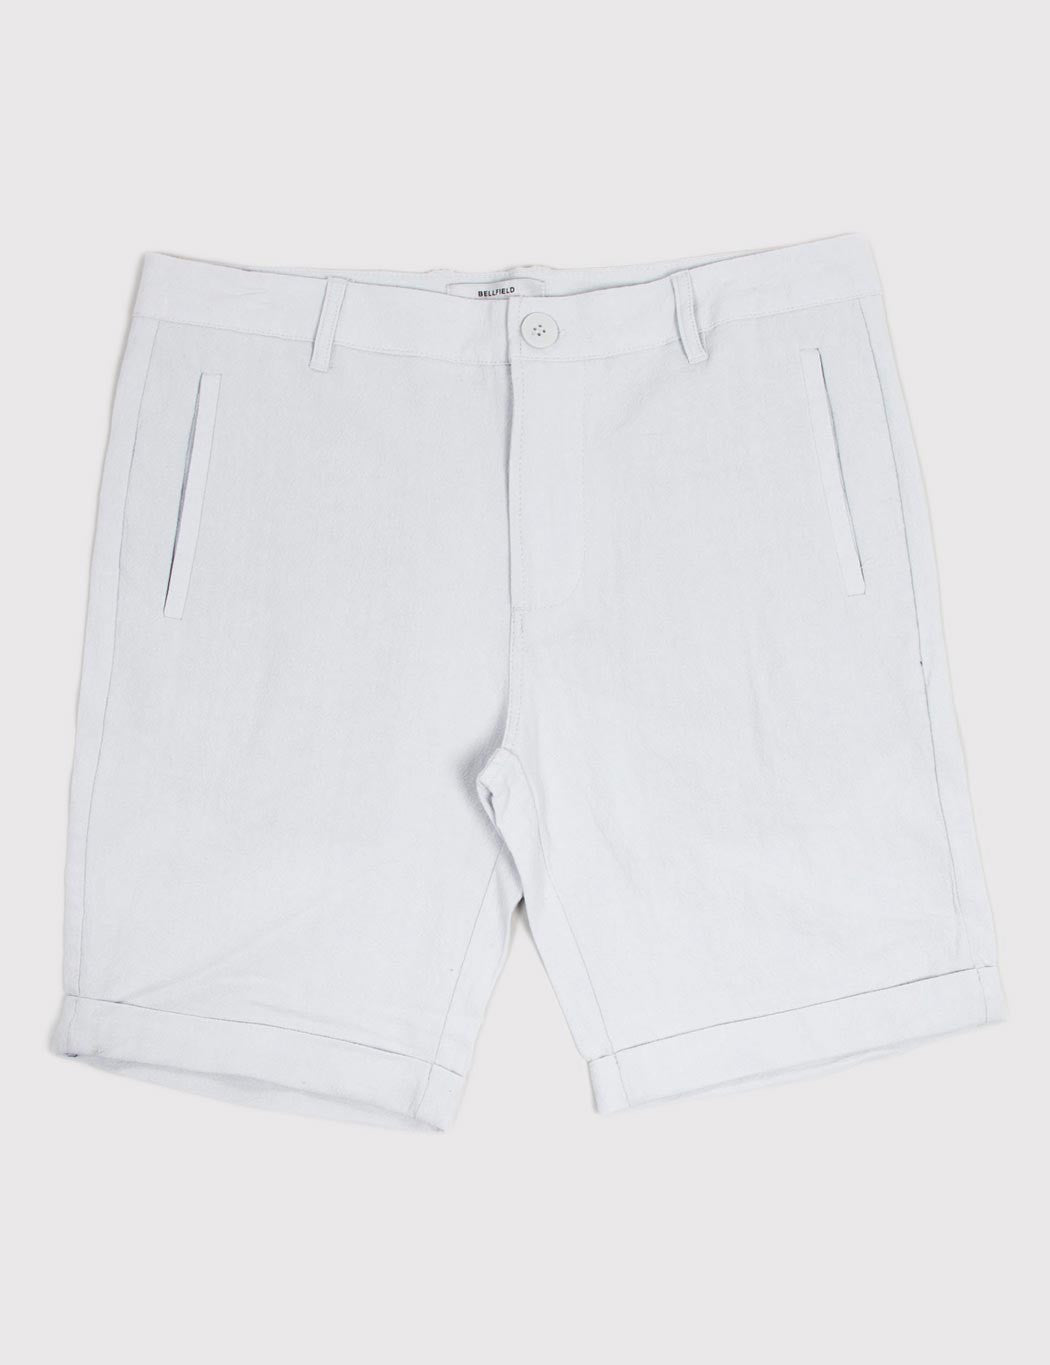 Bellfield Foxton Shorts - Grey